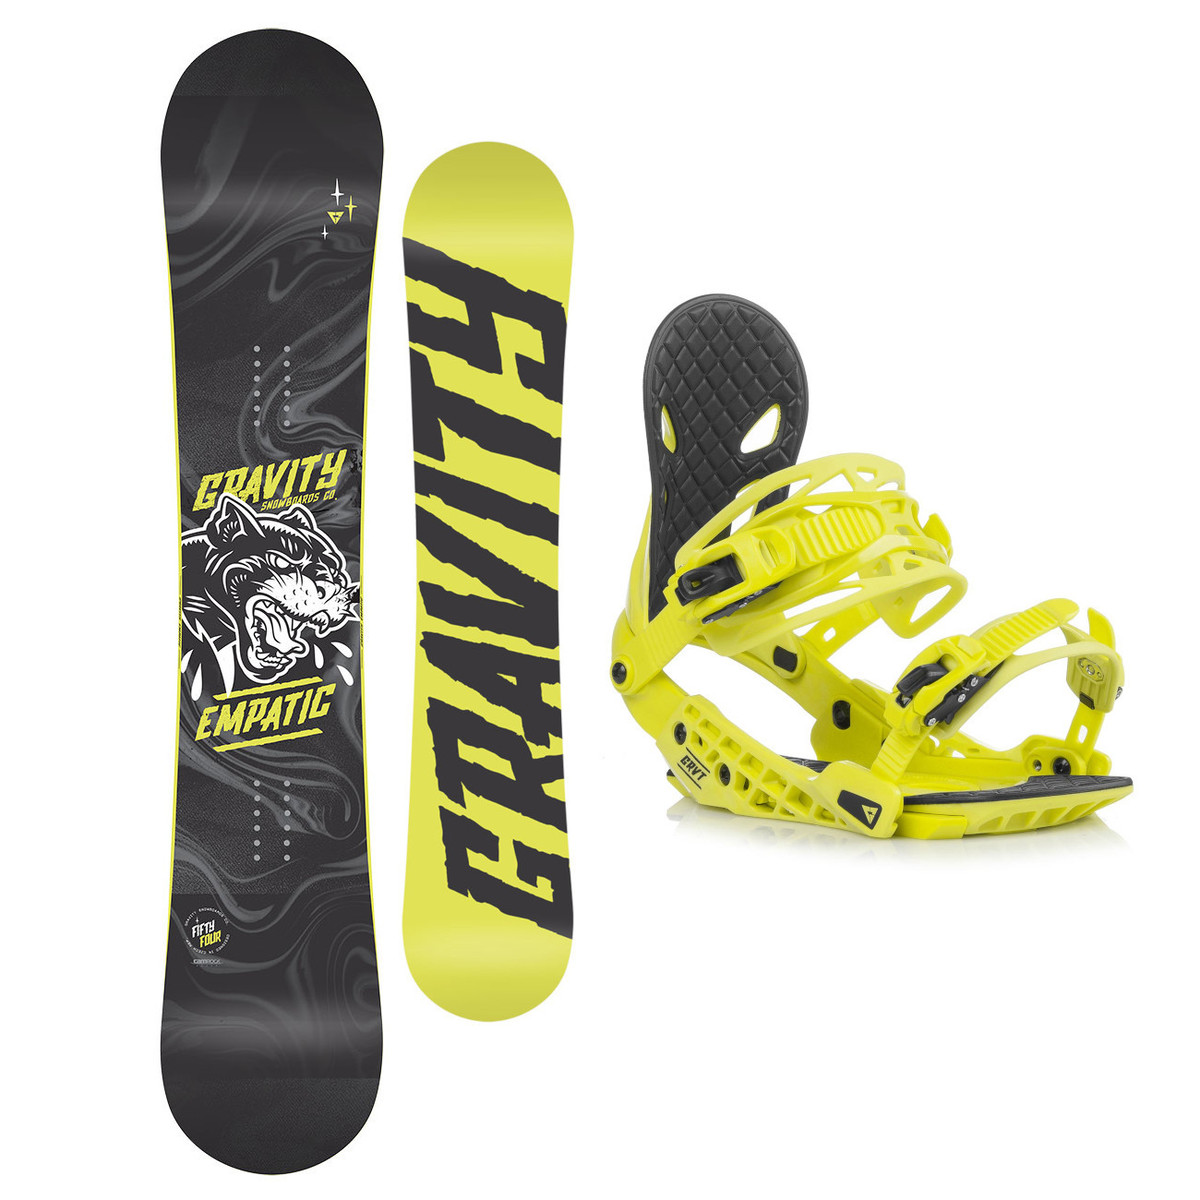 Snowboardový set Gravity Empatic 18/19 L (EU 42-48) 155W